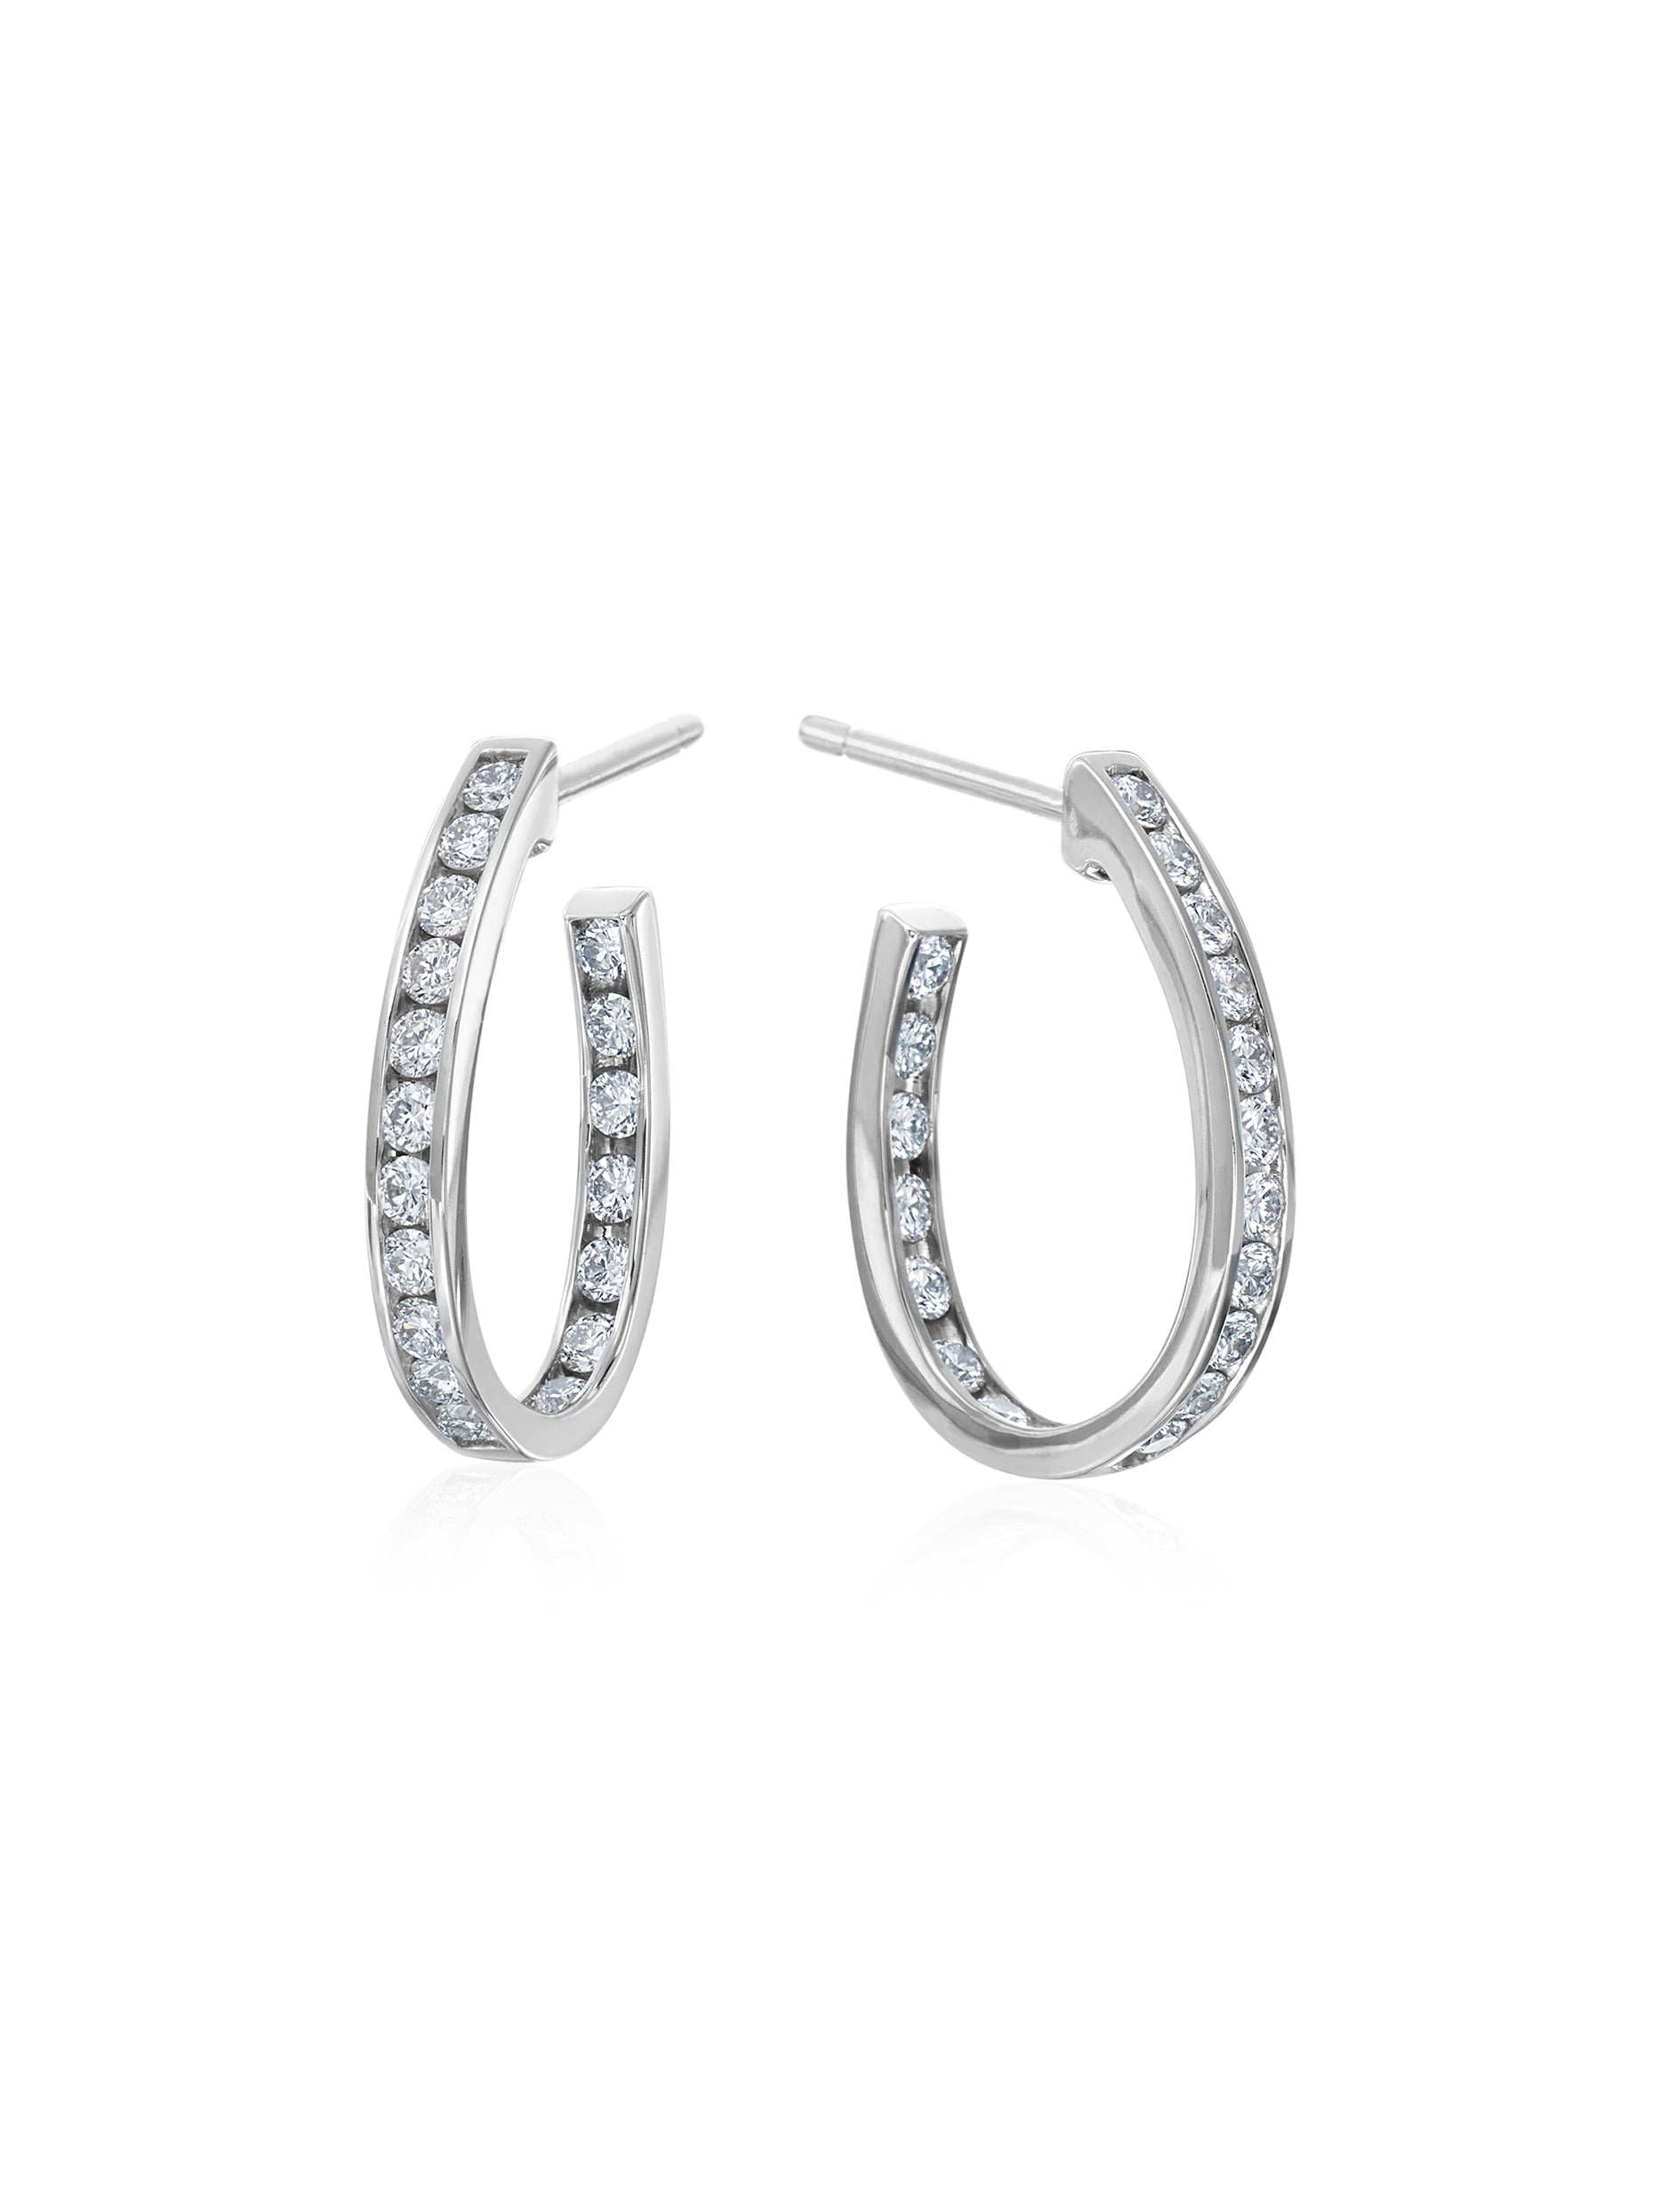 Channel Set Pear Shaped Diamond Hoops 1""